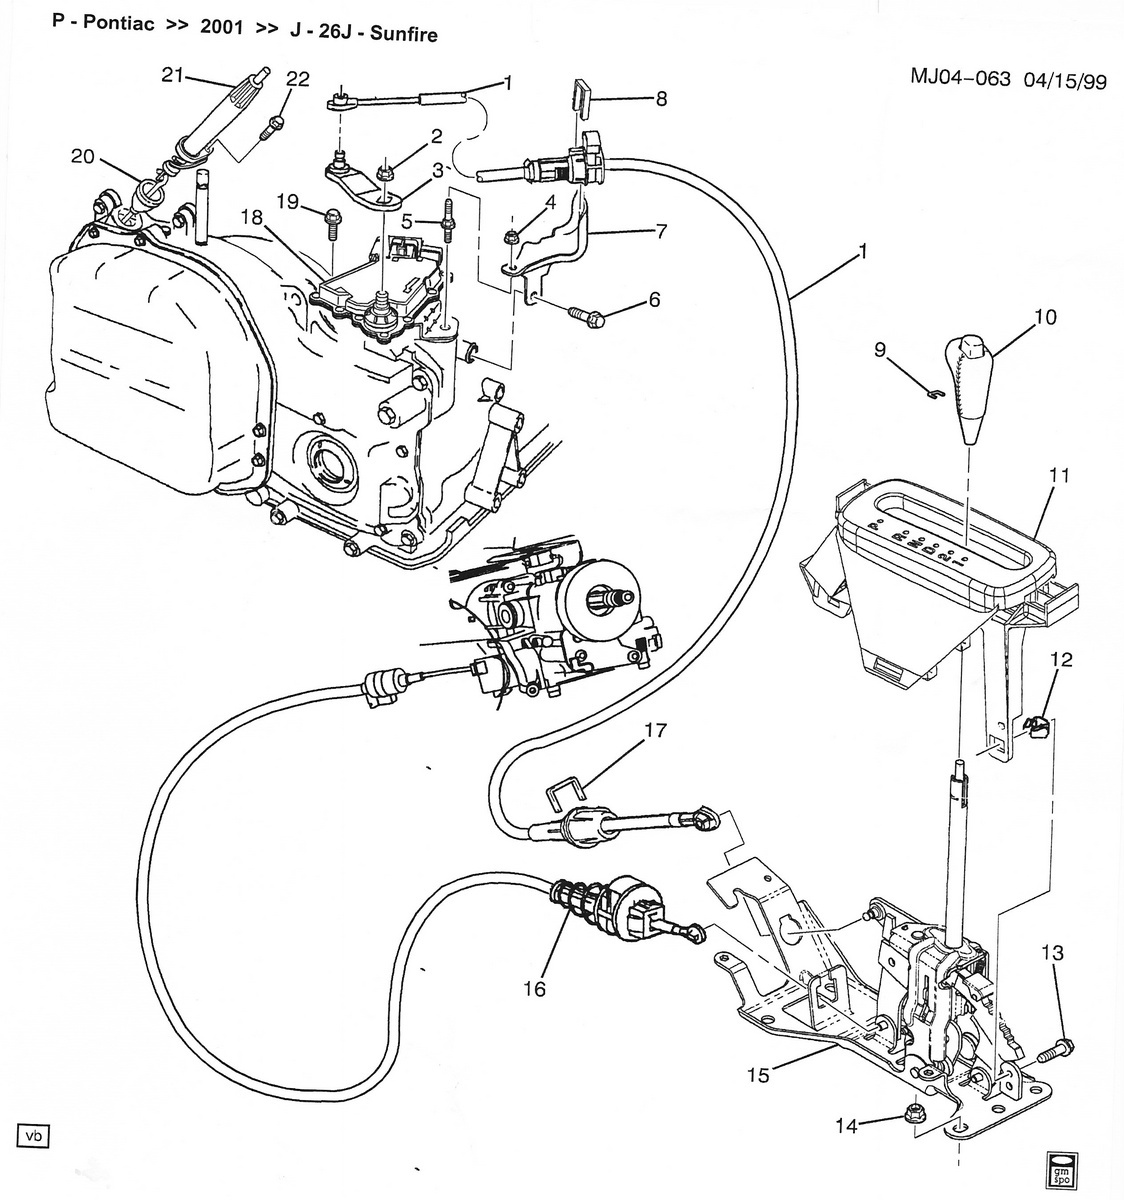 hight resolution of 2004 tahoe transmission wiring diagram wiring library transmission for chevy tahoe 2004 chevy tahoe transmission diagram